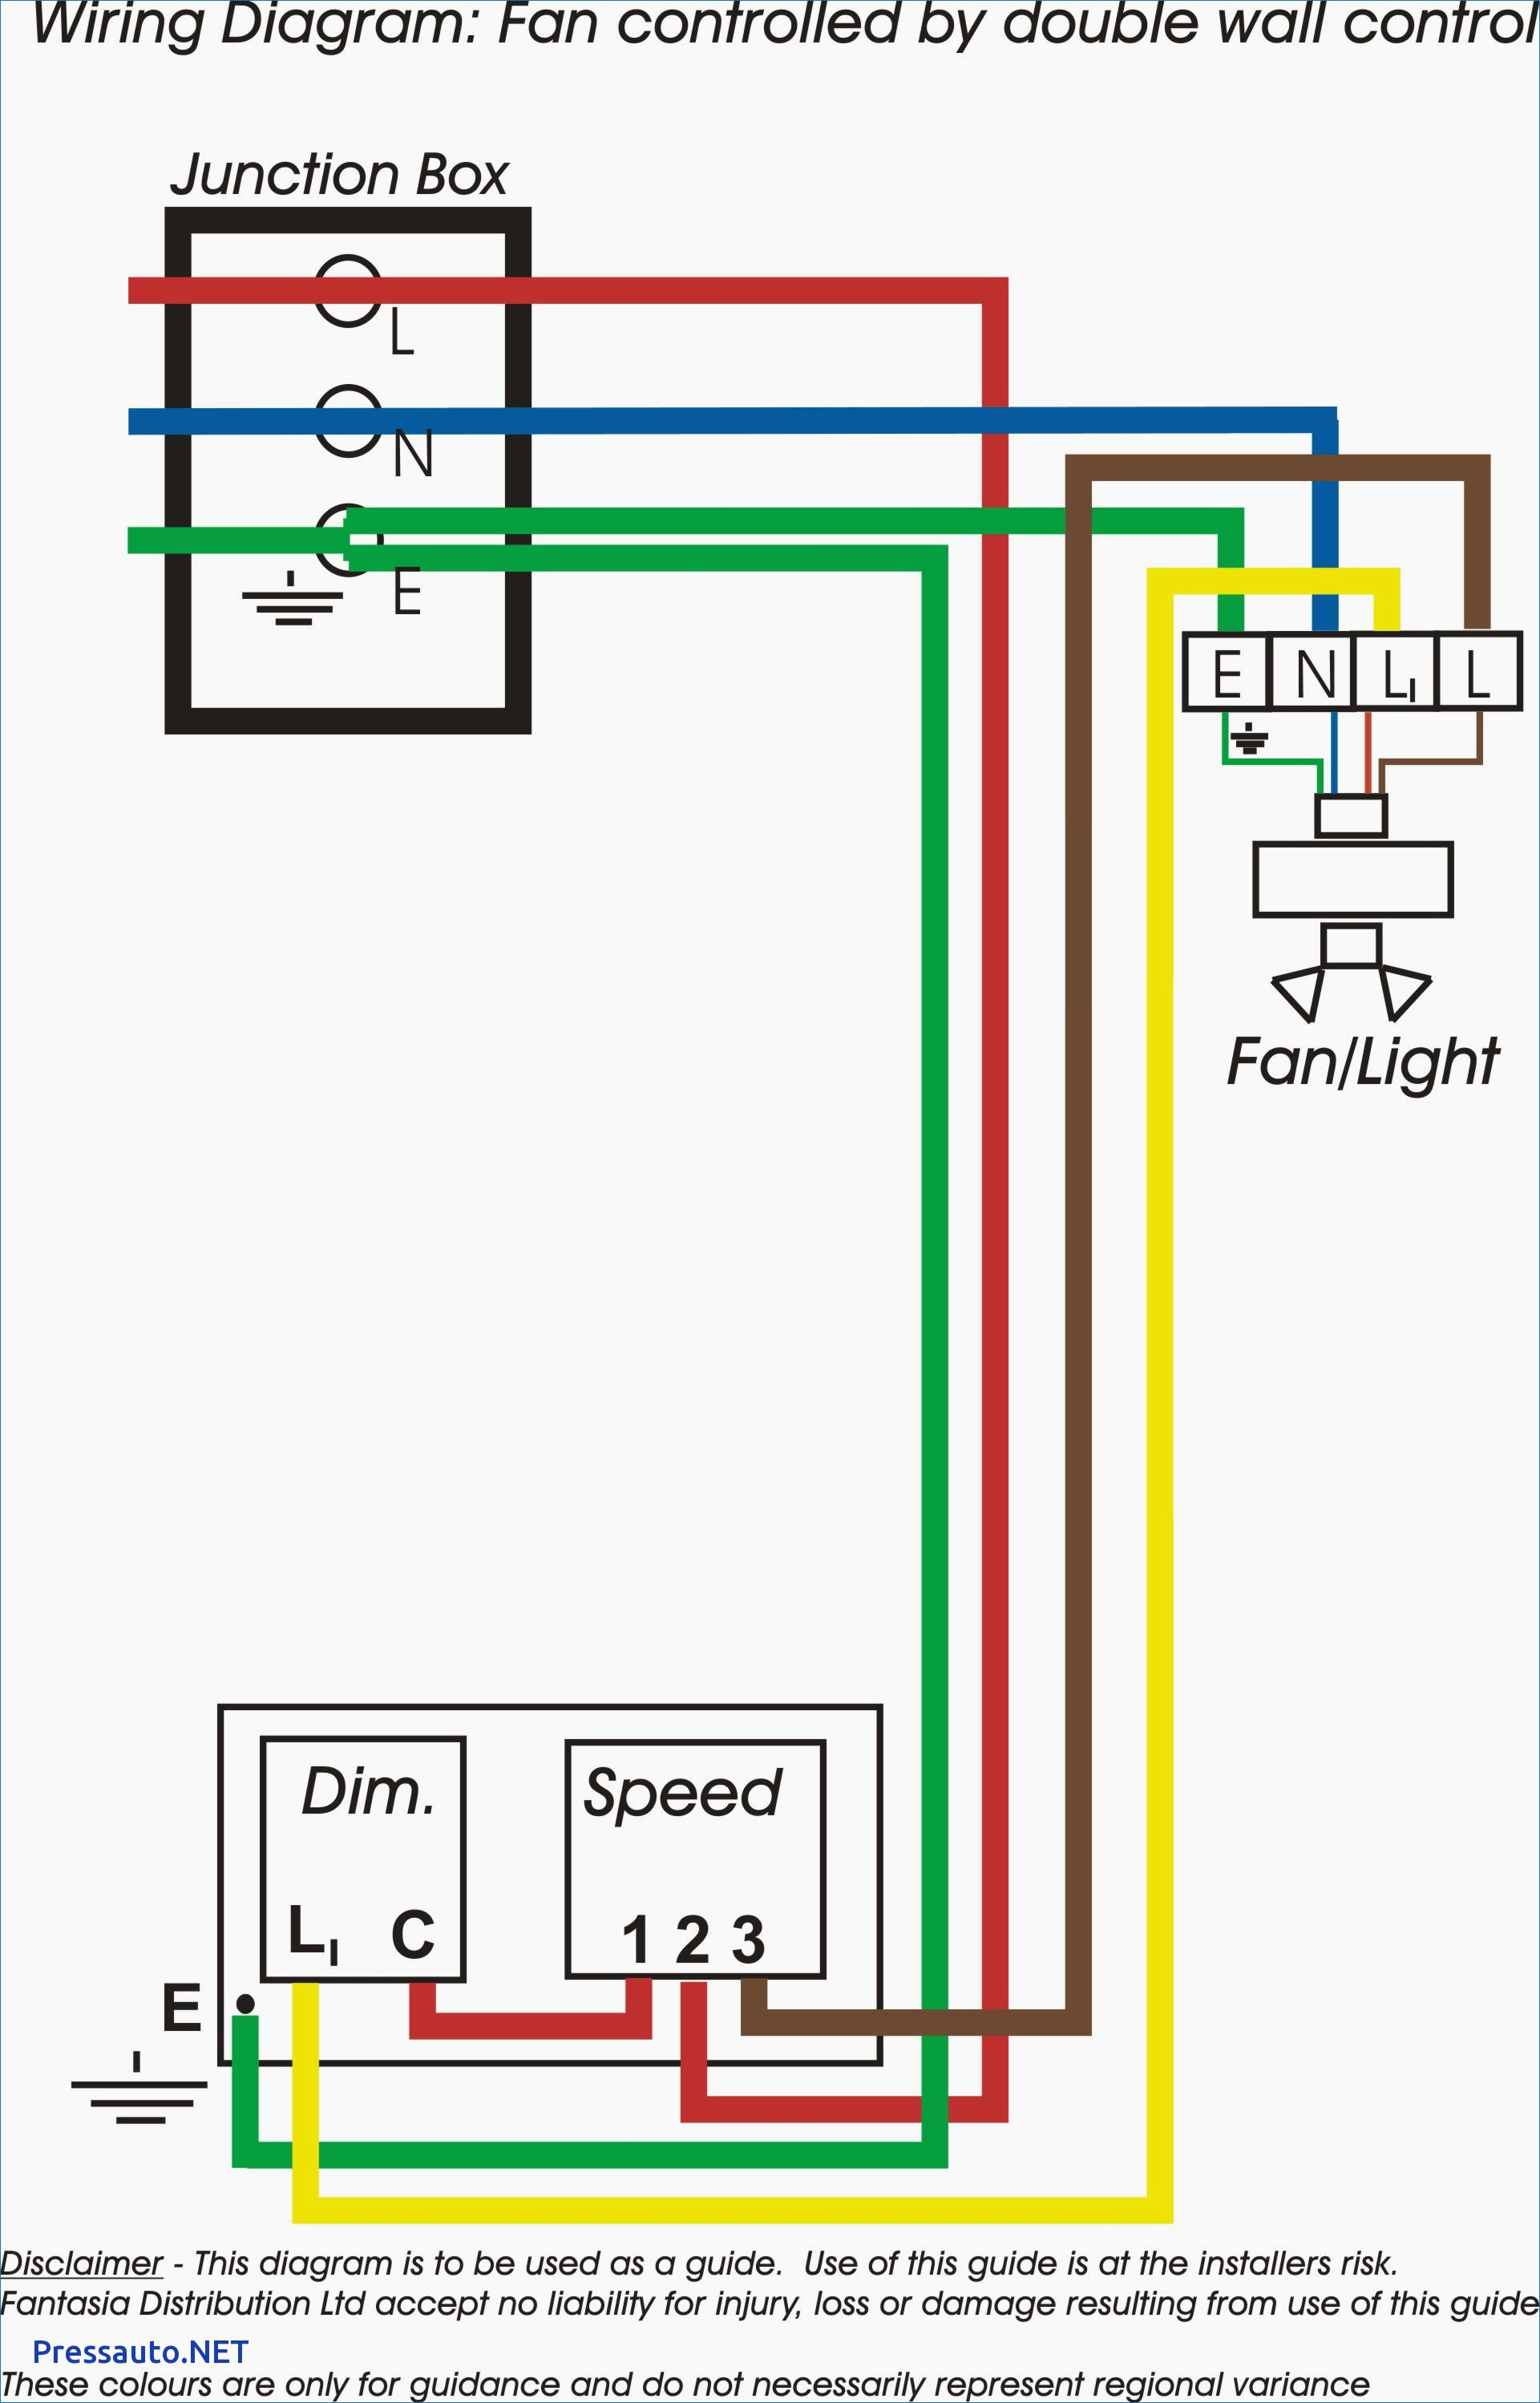 quorum ceiling fan wiring diagram trusted wiring diagrams \u2022 ceiling fan working quorum ceiling fan wiring diagram collection wiring collection rh headcontrolsystem com ceiling fan wiring schematic emerson